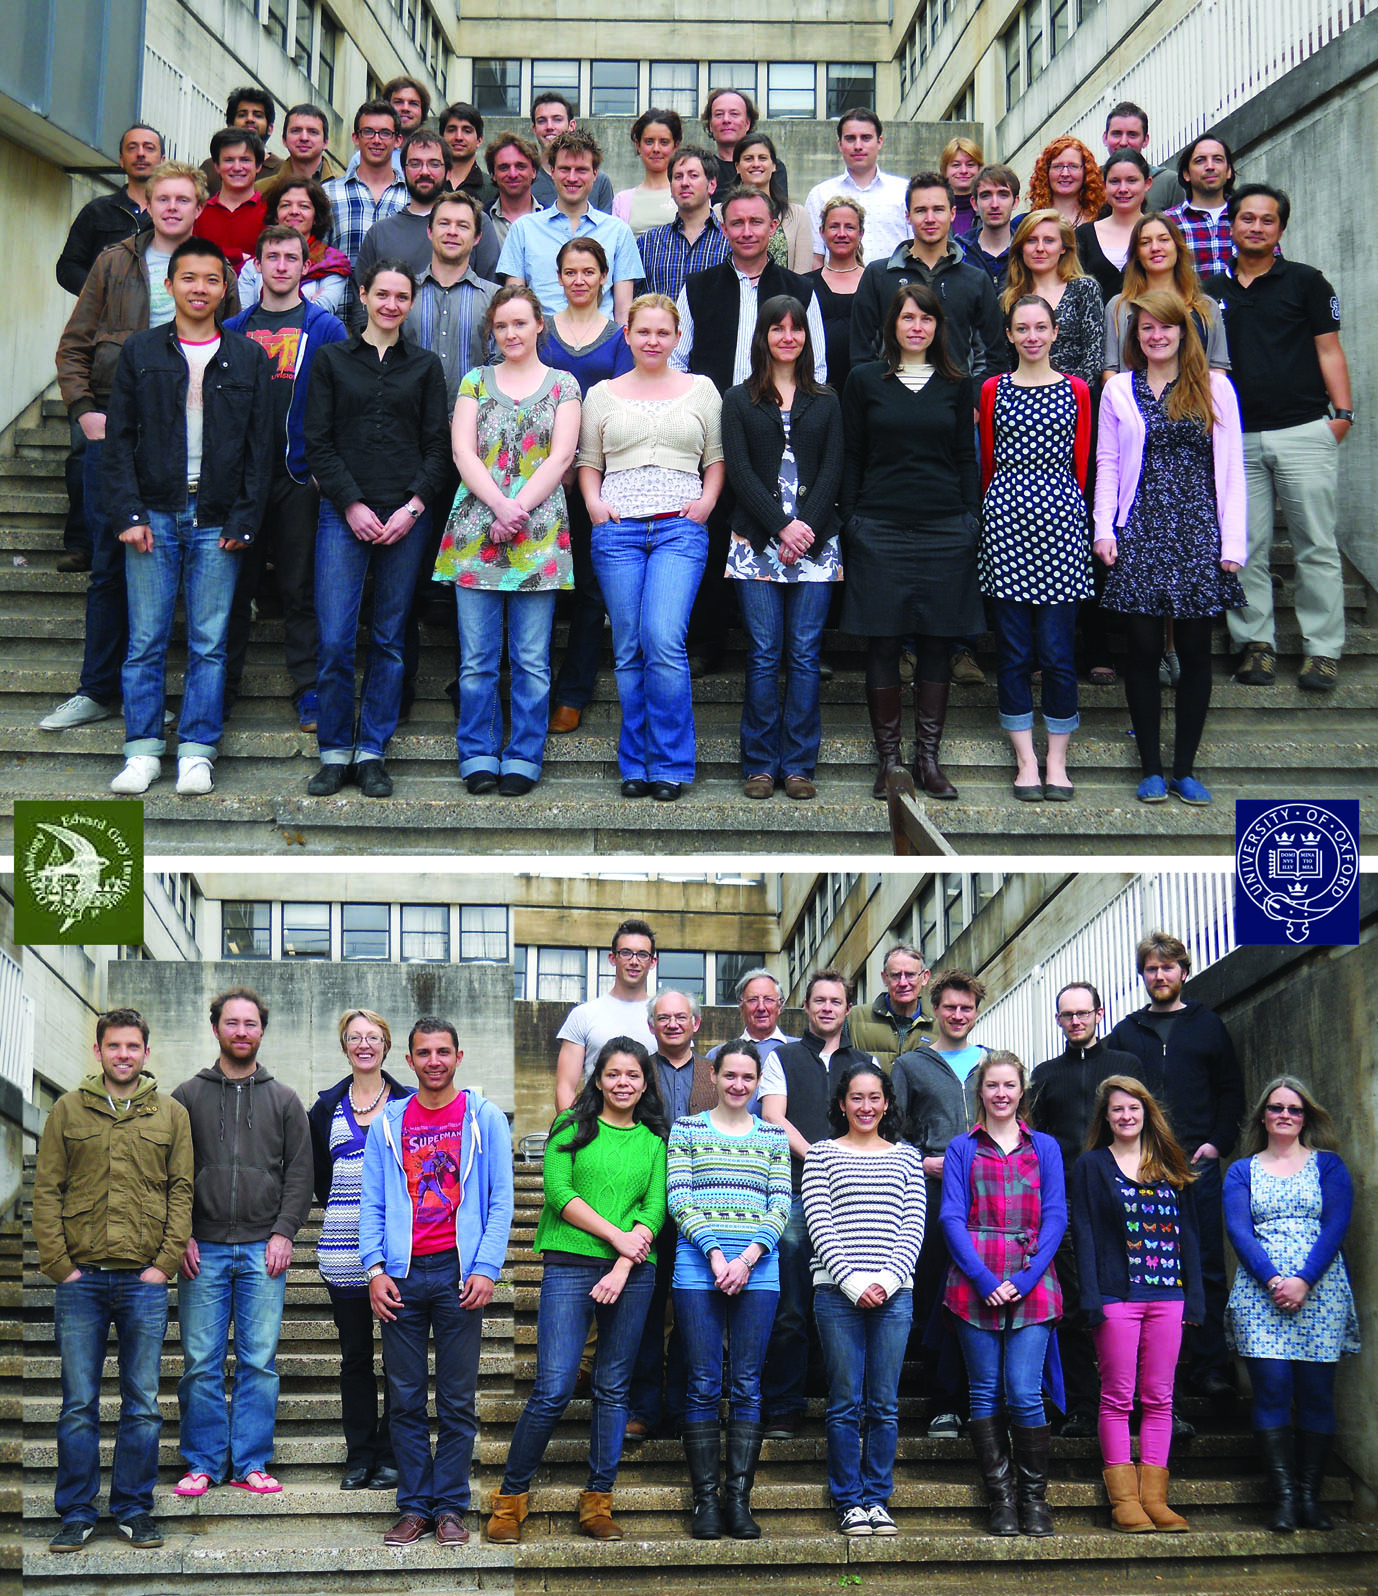 2012 Members of the EGI